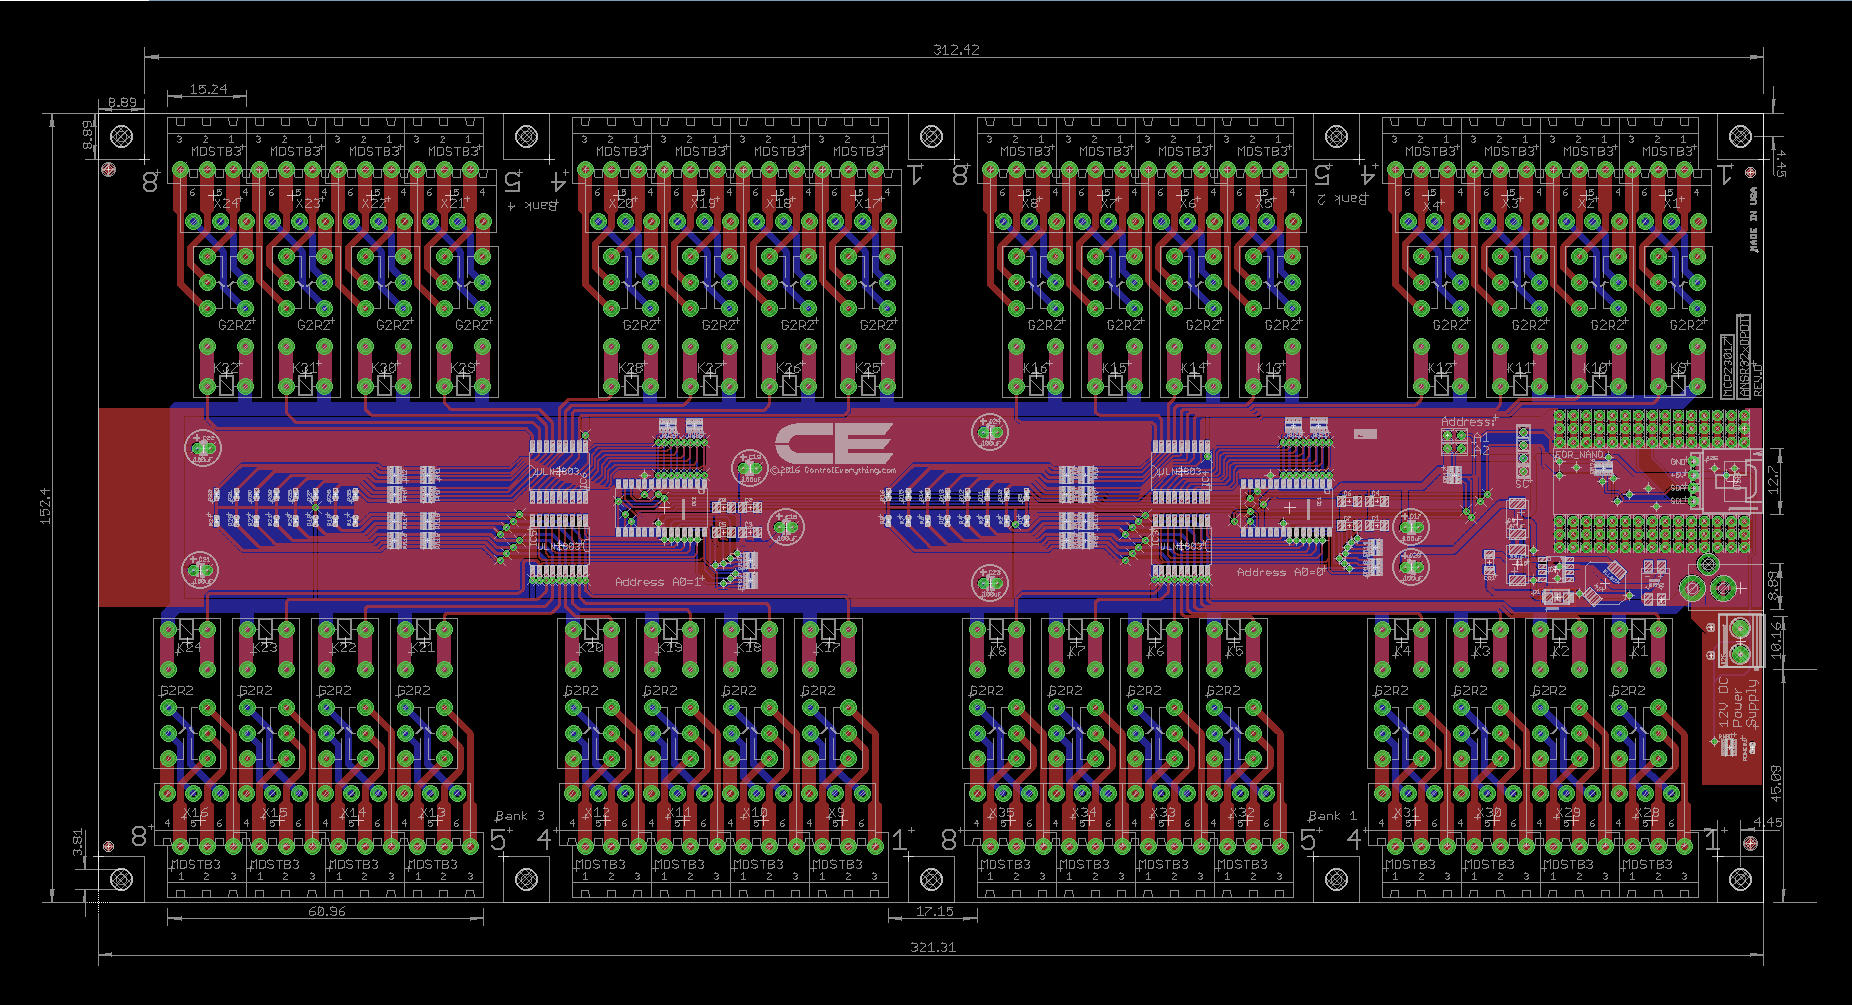 32 Channel Relay Controller For Arduino Nano Circuit Diagram Together With On Dc To Ac Wiring